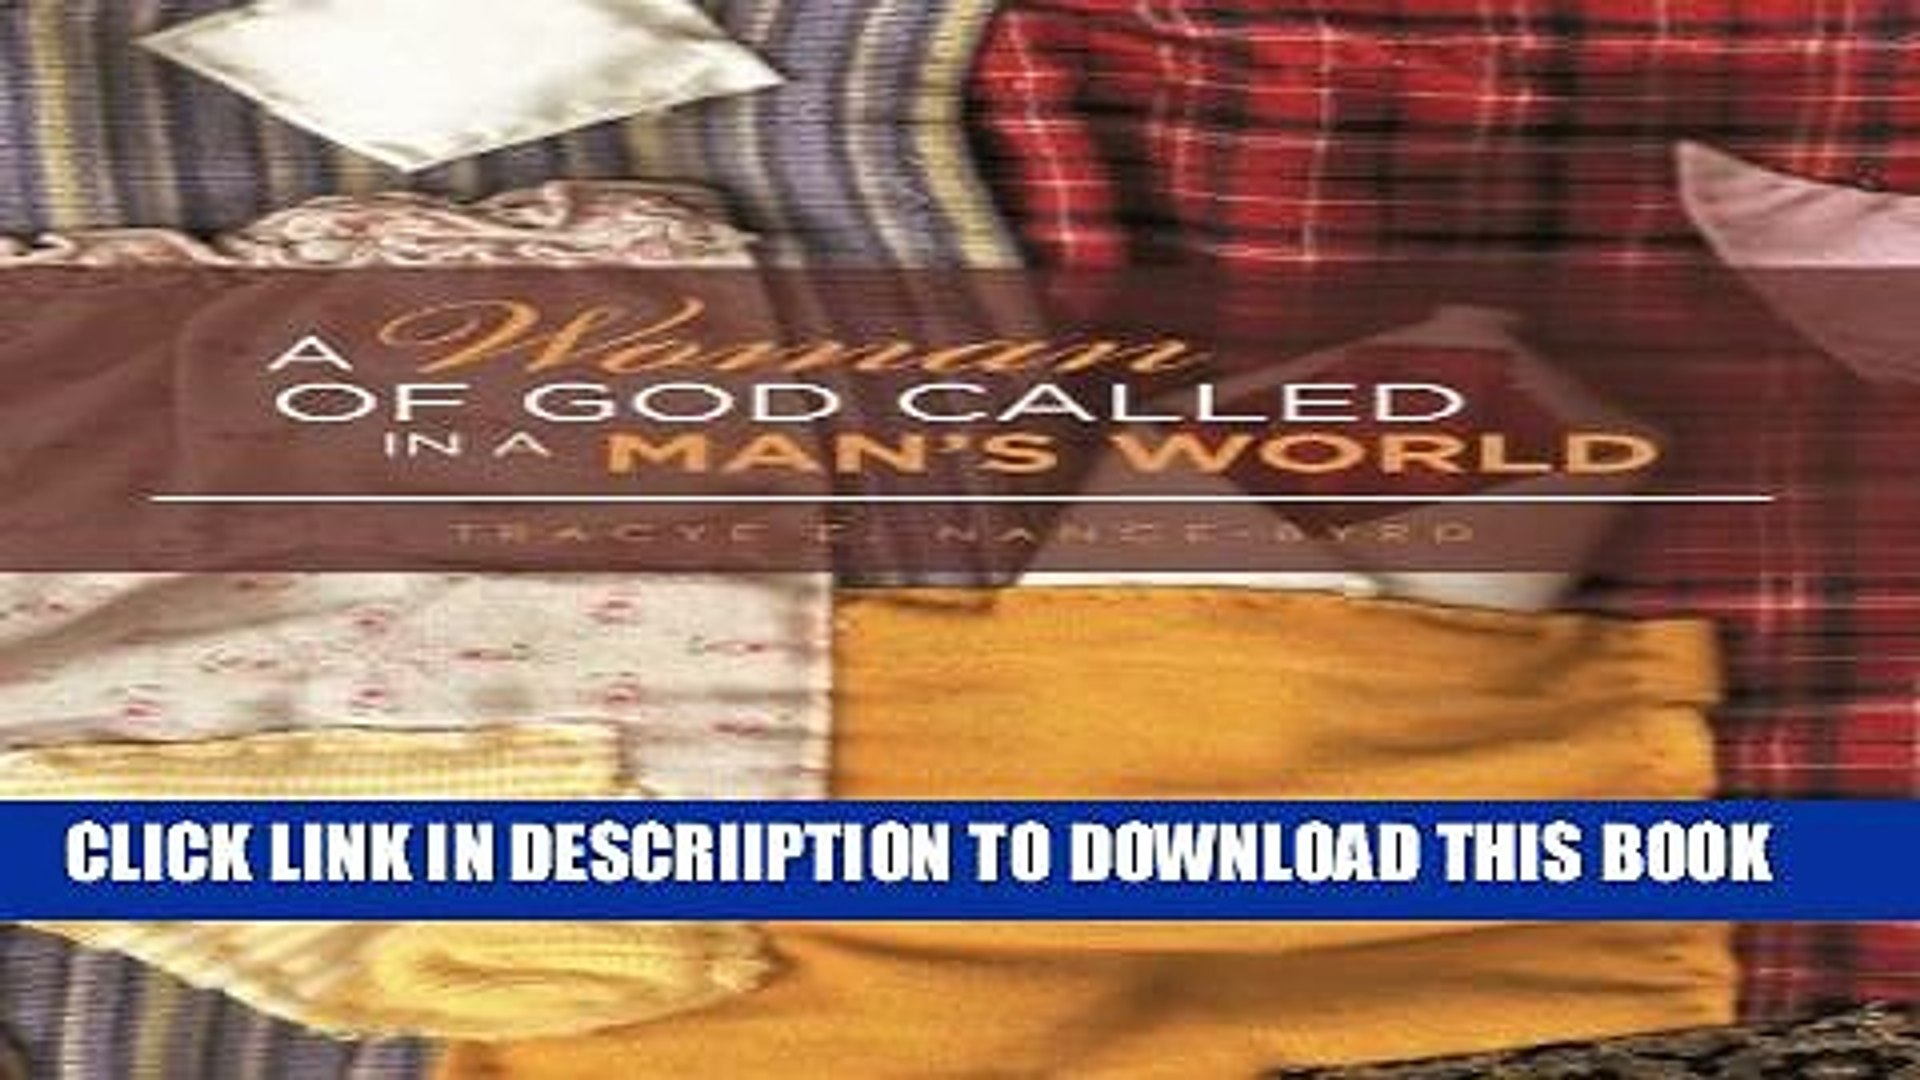 [PDF] A Woman of God Called in a Man s World Exclusive Online